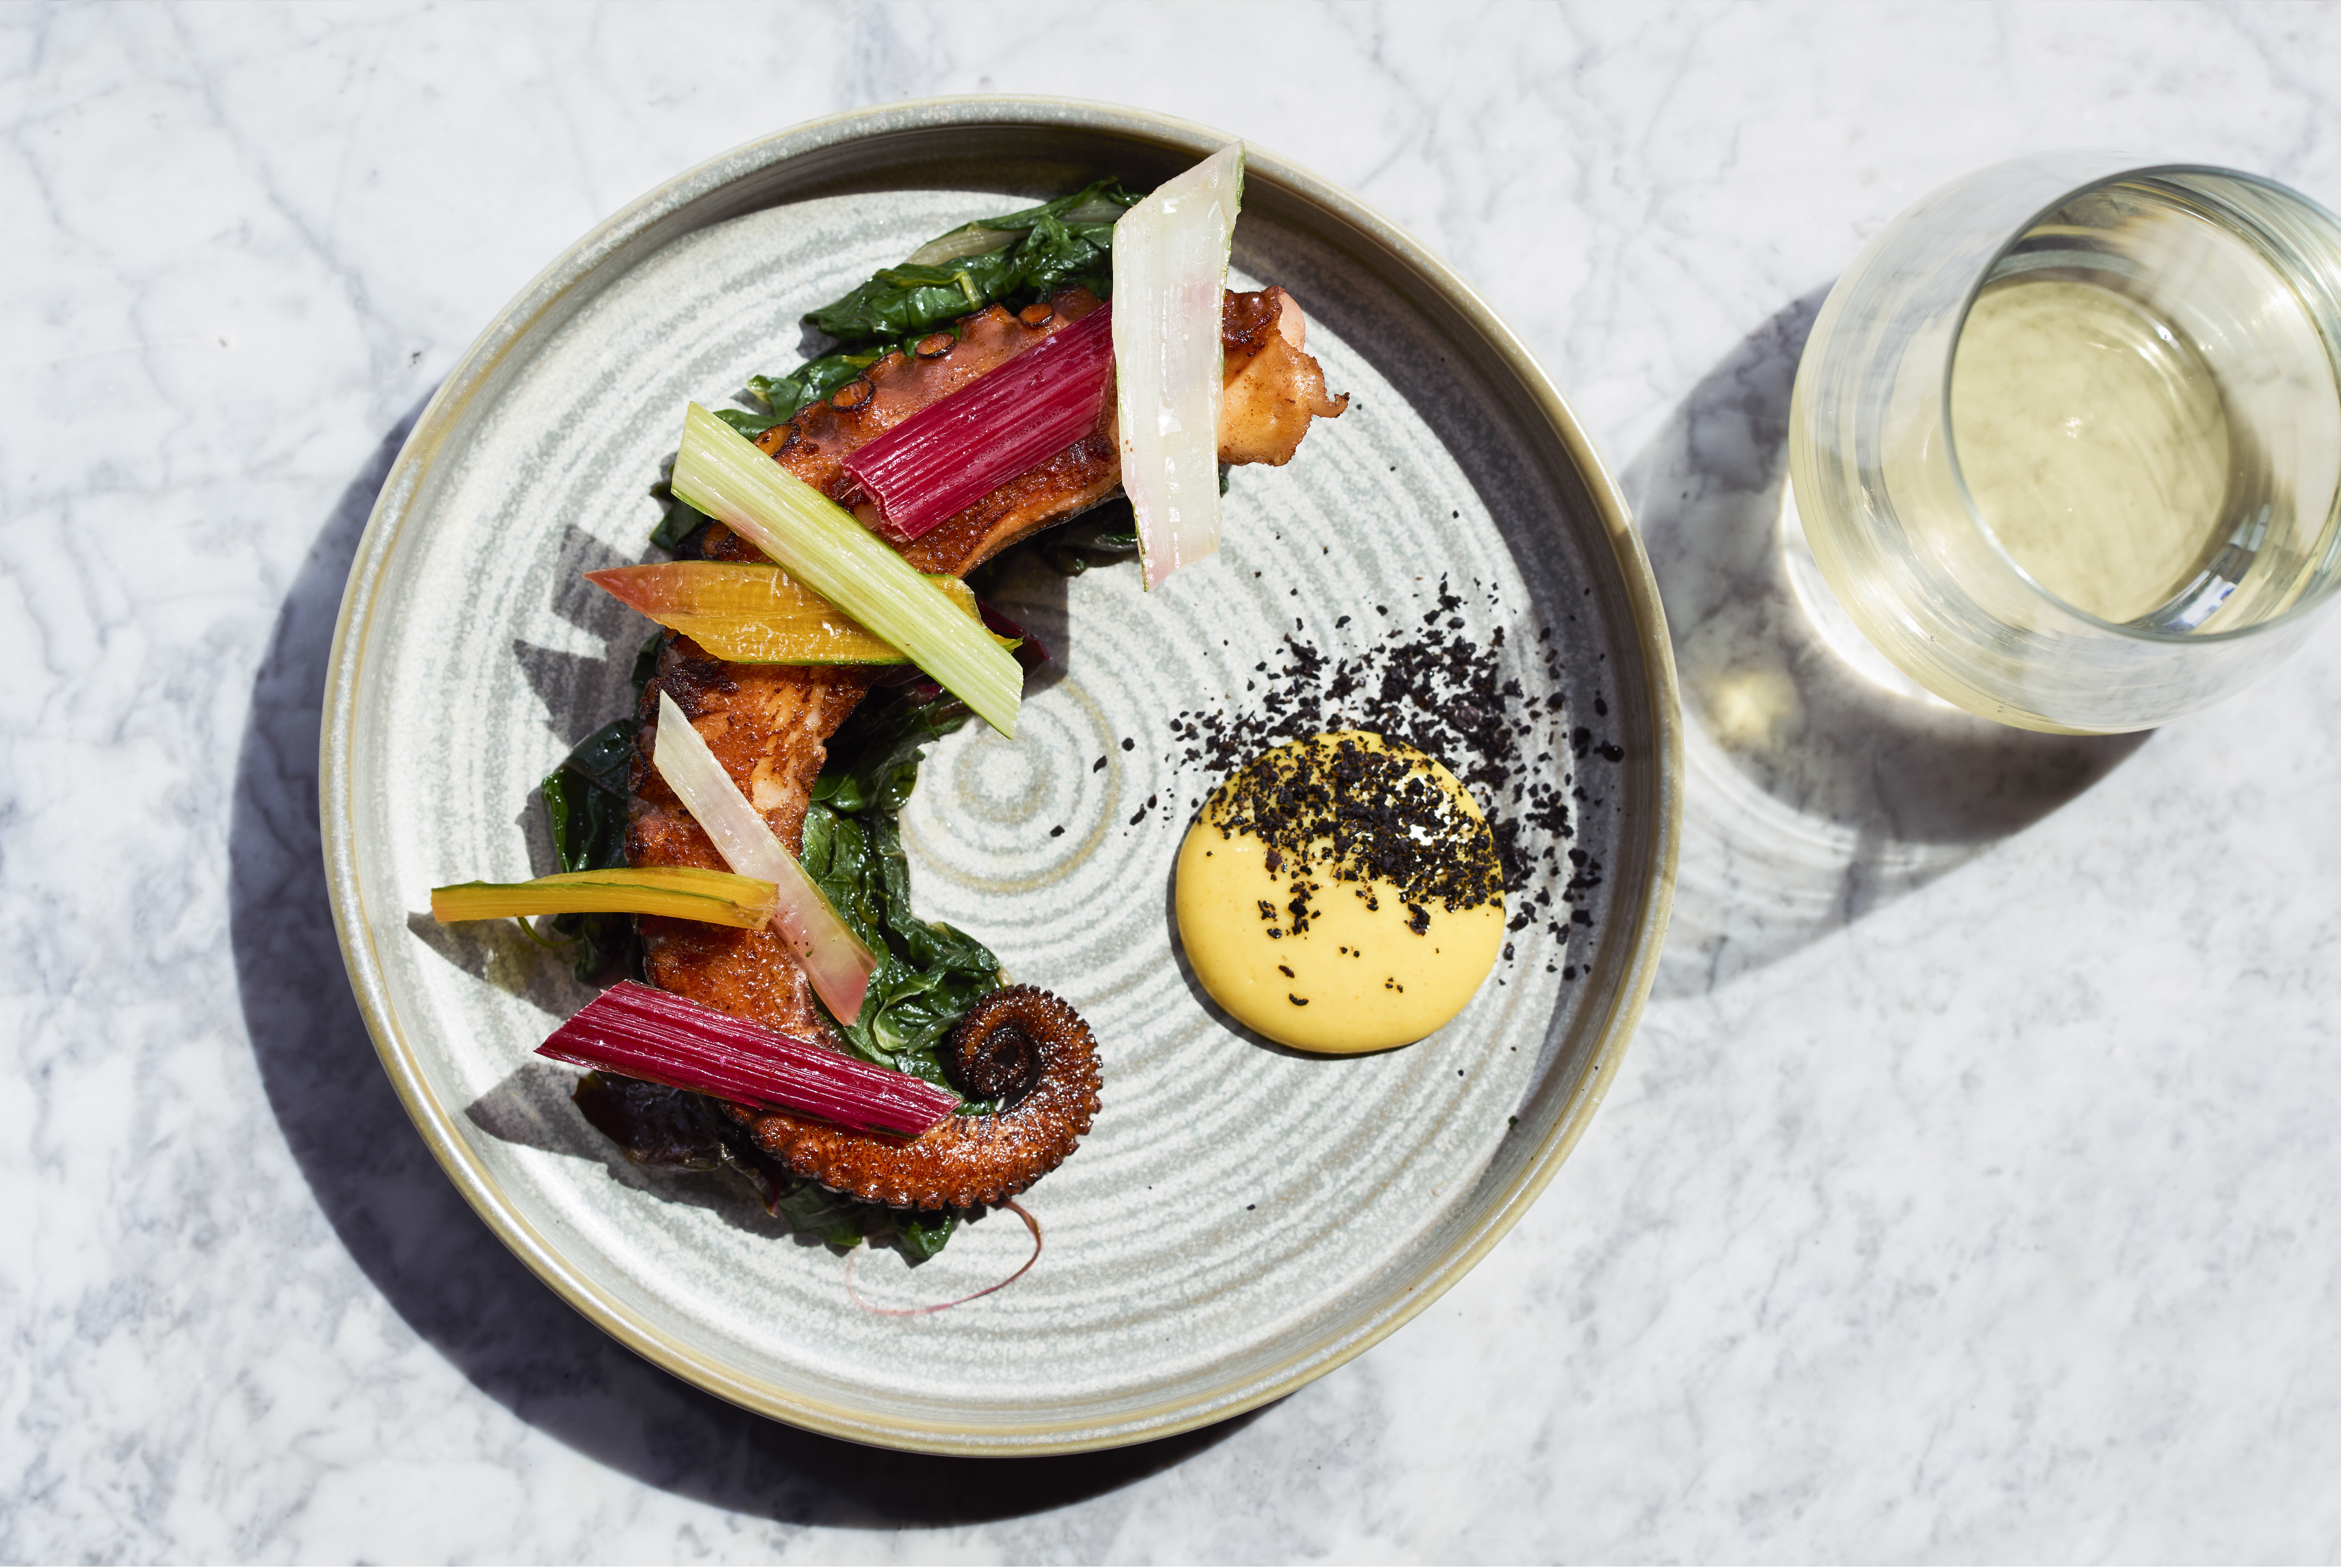 Octopus with chard at Haya, which will open in Notting Hill in September with an ex-Heston Blumenthal chef in the kitchen